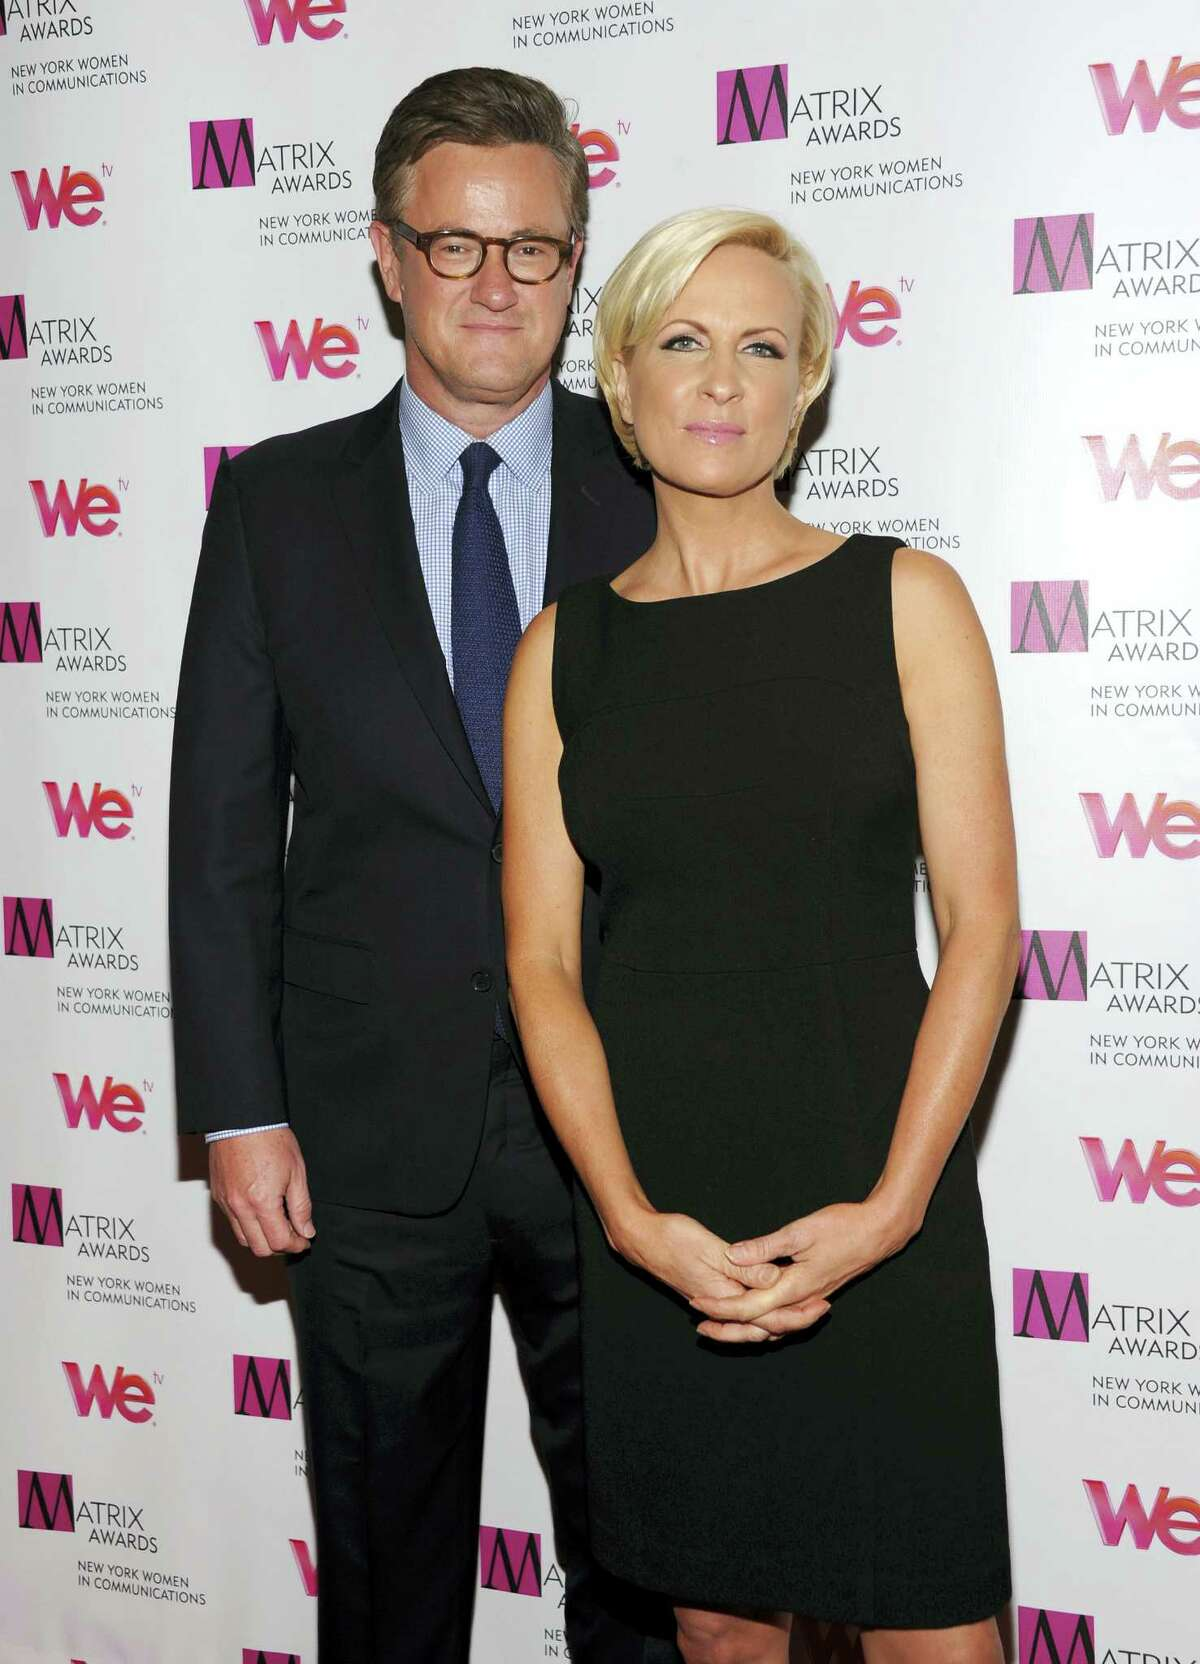 """In this April 22, 2013 photo, MSNBC's """"Morning Joe"""" co-hosts Joe Scarborough and Mika Brzezinski, right, attend the 2013 Matrix New York Women in Communications Awards at the Waldorf-Astoria Hotel in New York. MSNBC confirmed May 4, 2017 that the """"Morning Joe"""" co-hosts are engaged."""